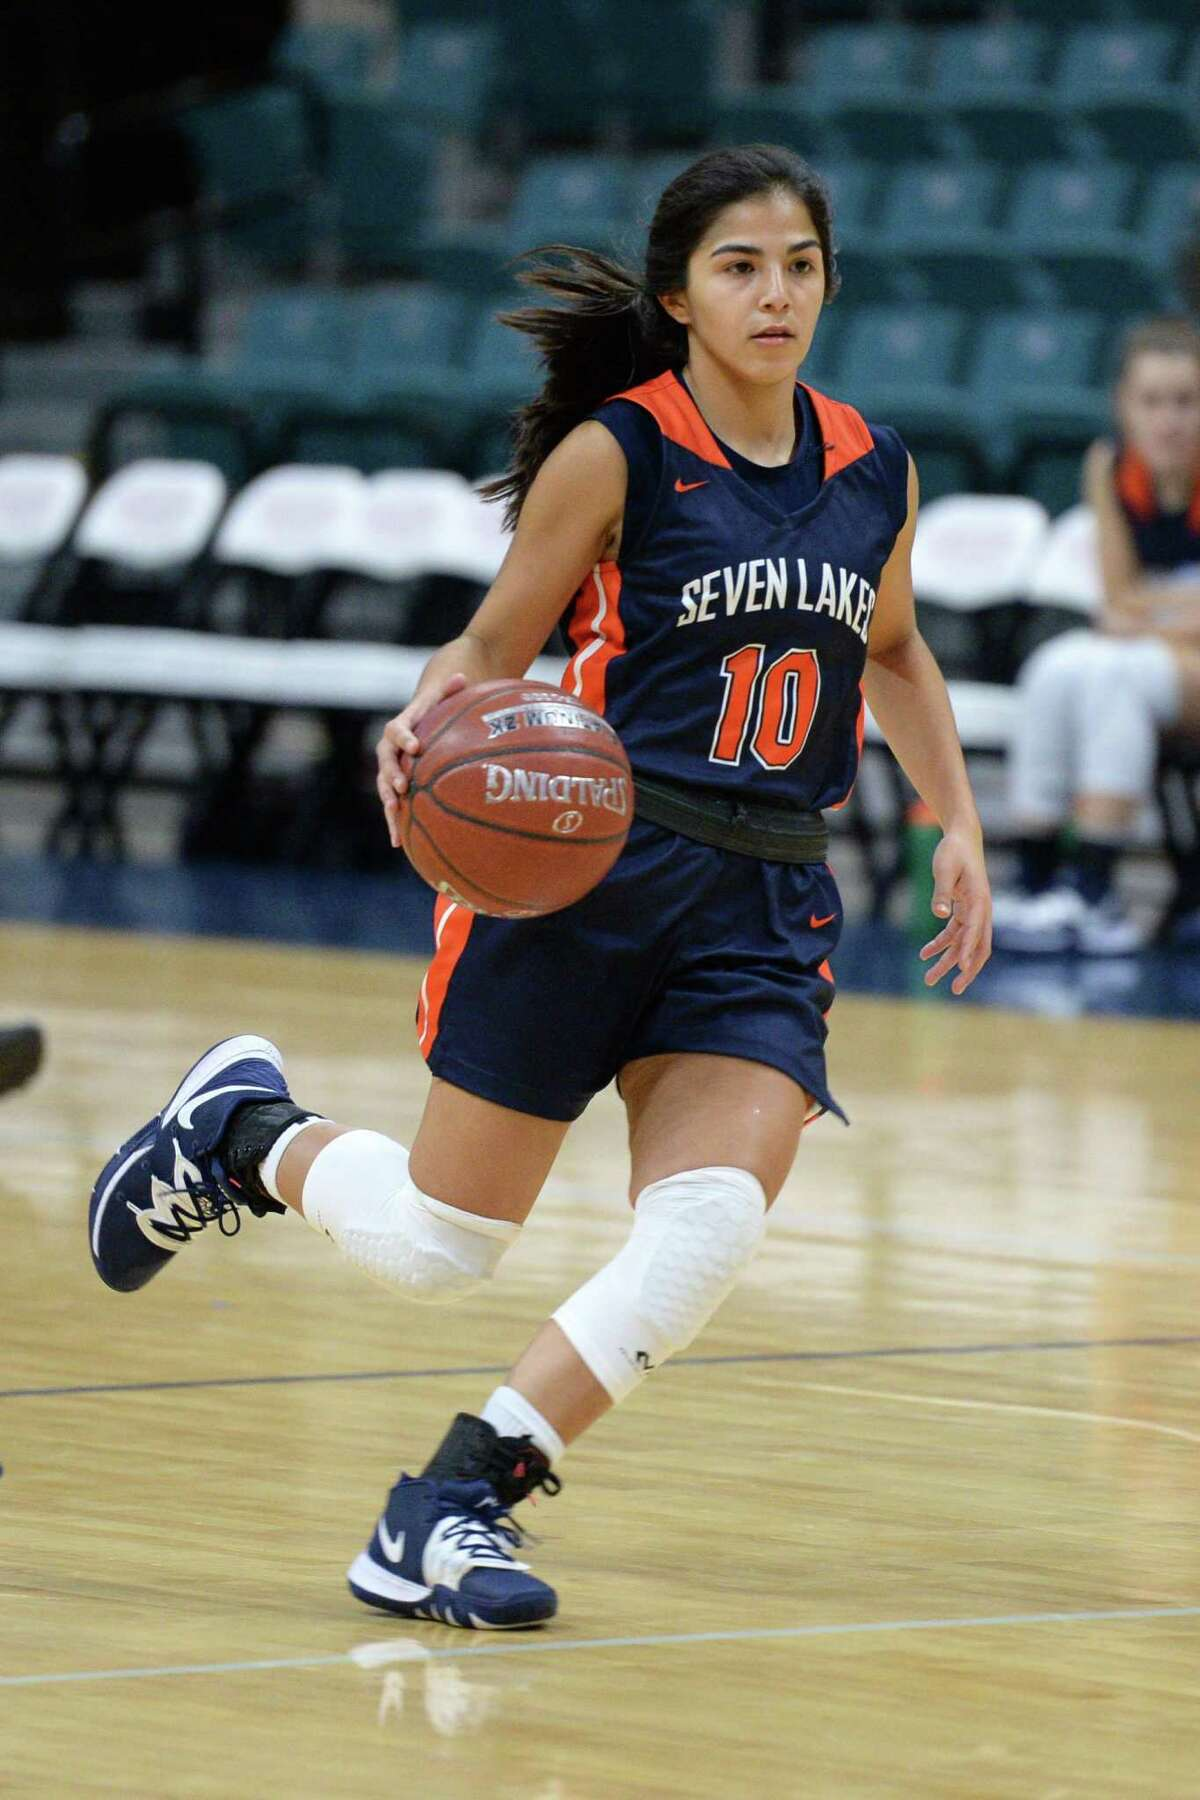 Ximena Diez (10) of Seven Lakes dribbles past mid-court during the first half of the third place game in the Katy Classic Basketball Tournament between the Seven Lakes Spartans and the Mansfield Tigers on Saturday, December 7, 2019 at the Leonard Merrell Center in Katy, TX.